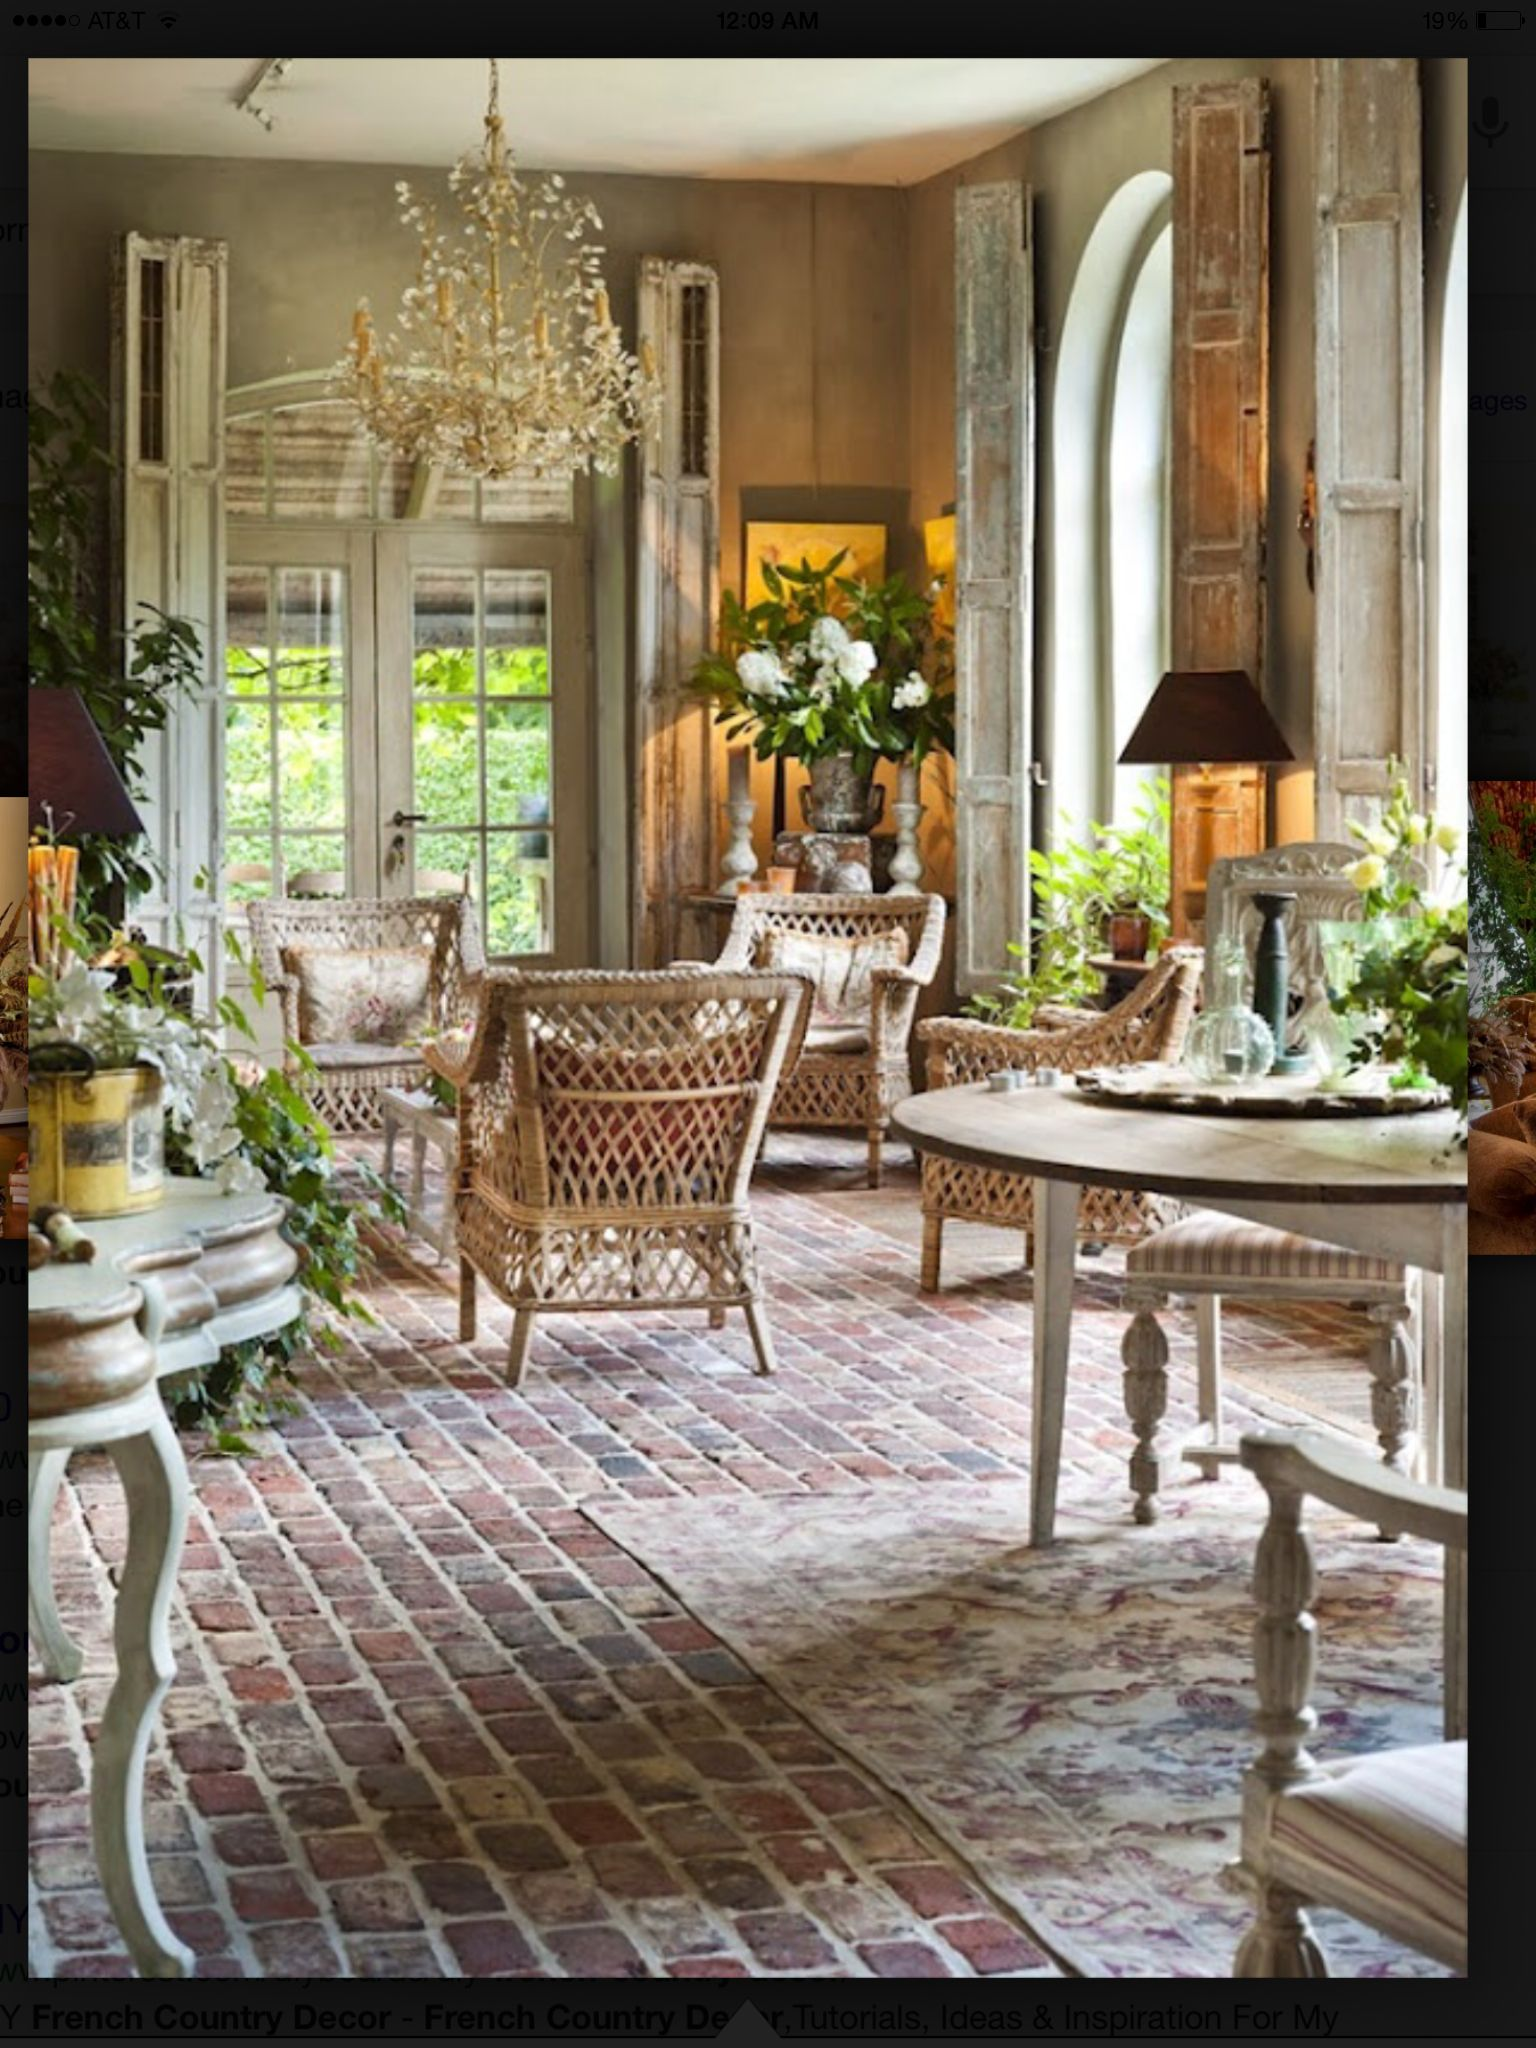 French Country Decorating 30 Ideas from the South of